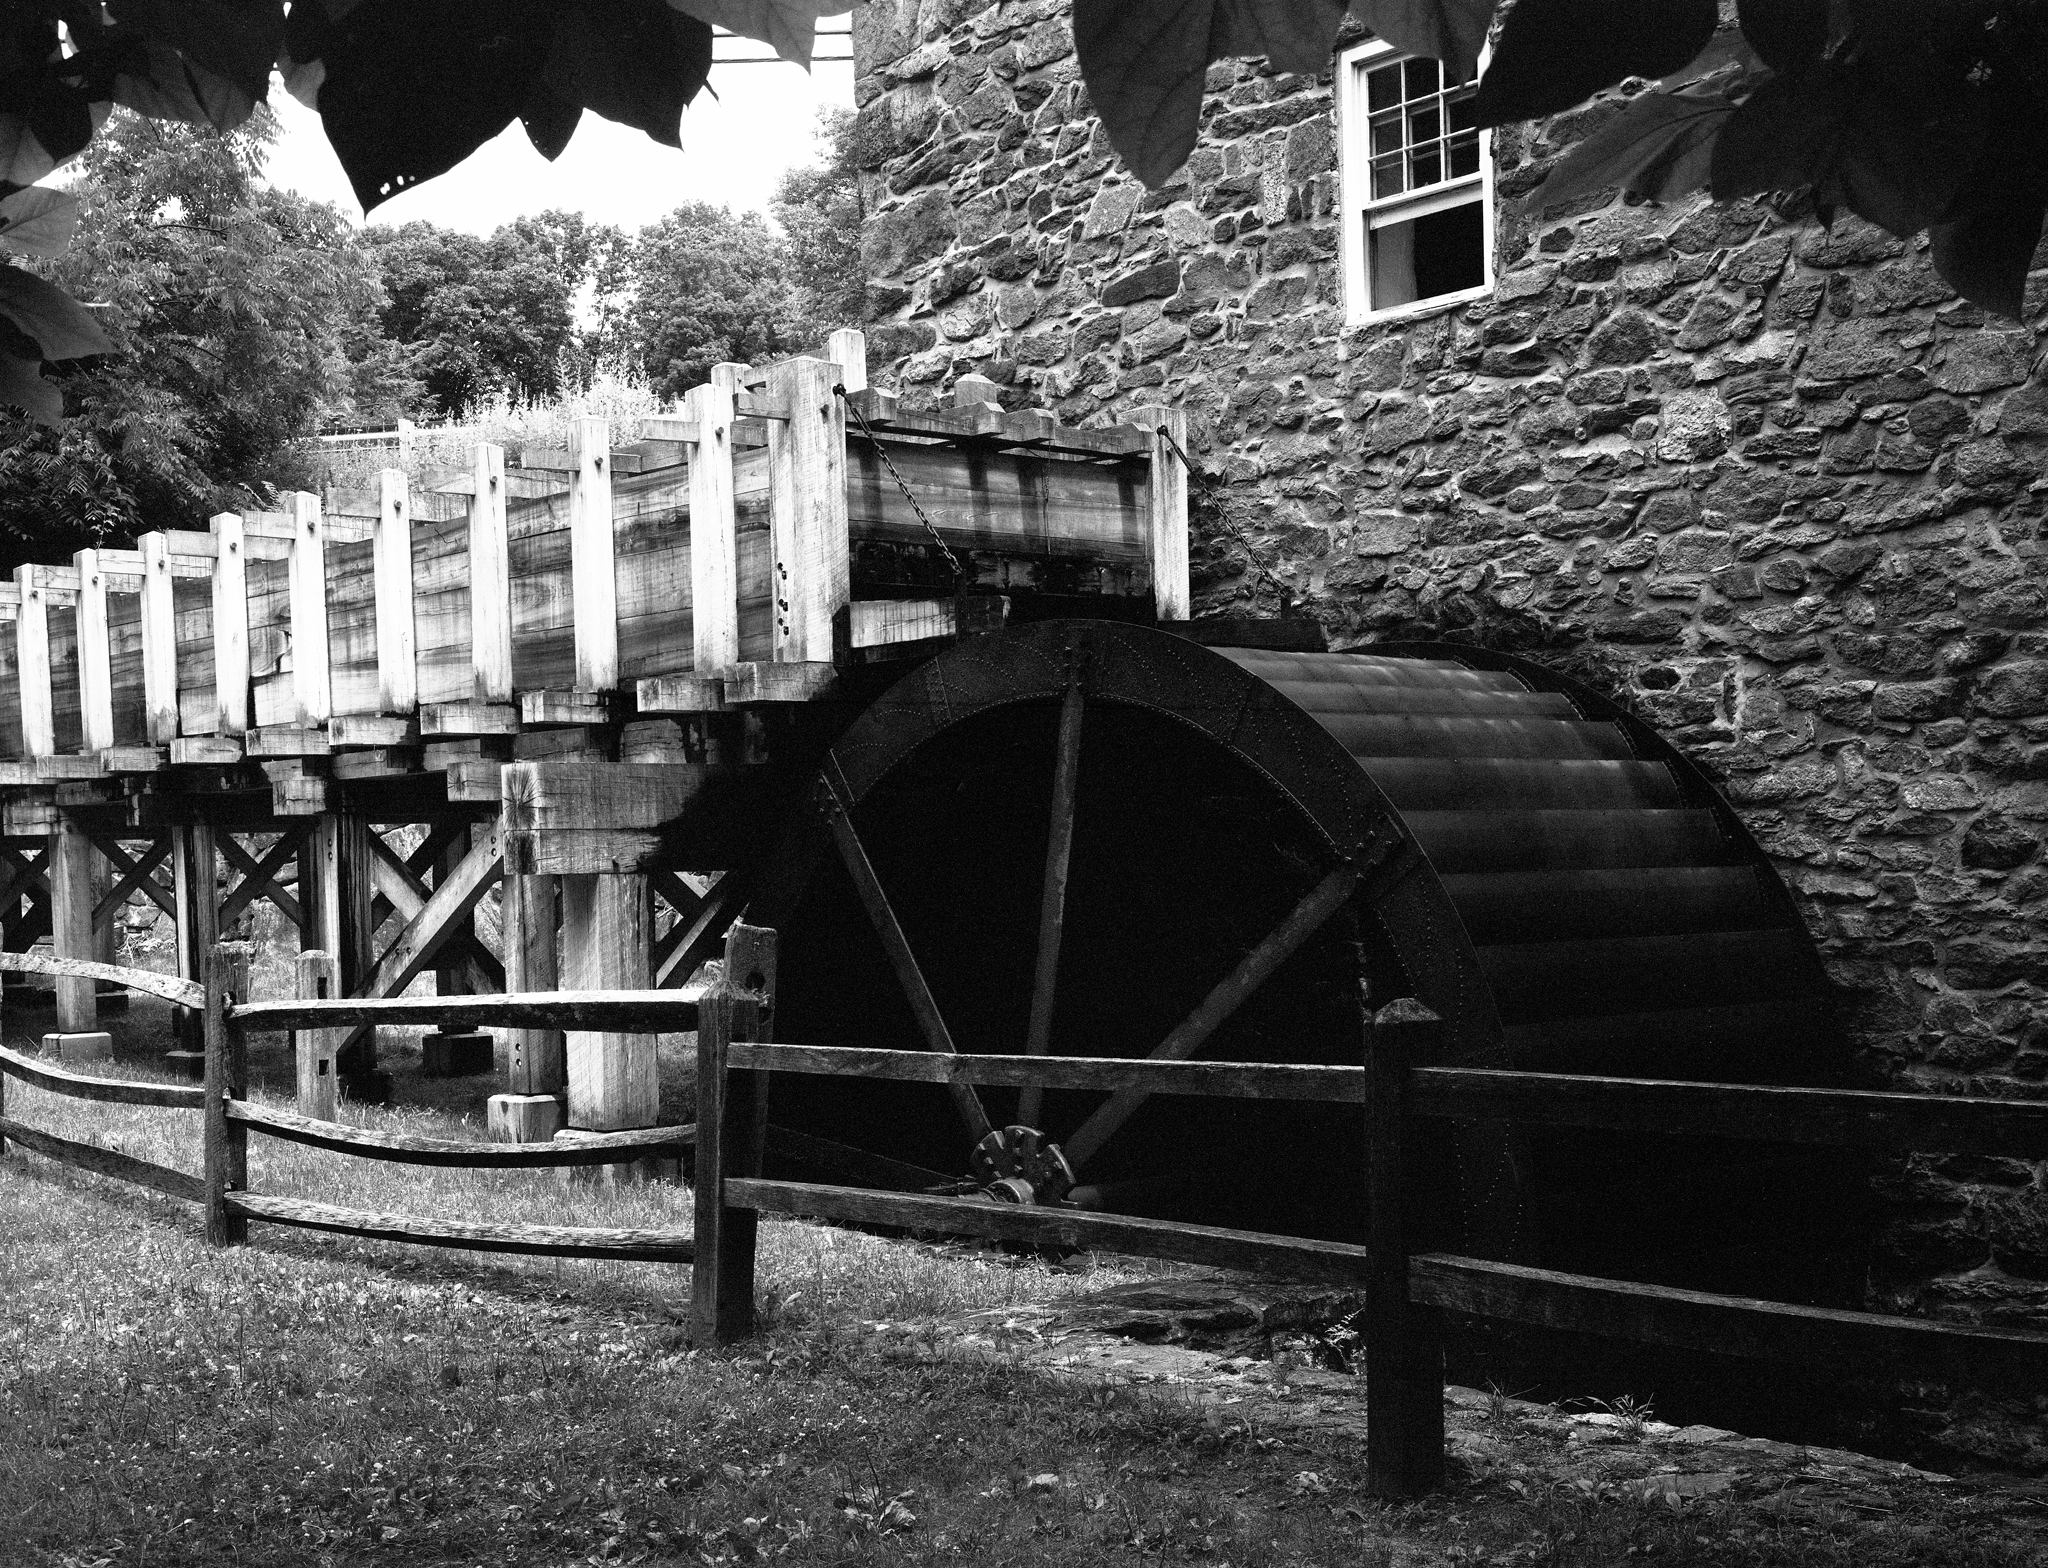 4x5_for_365_project_0203_Cooper_Mill_water_wheel.png